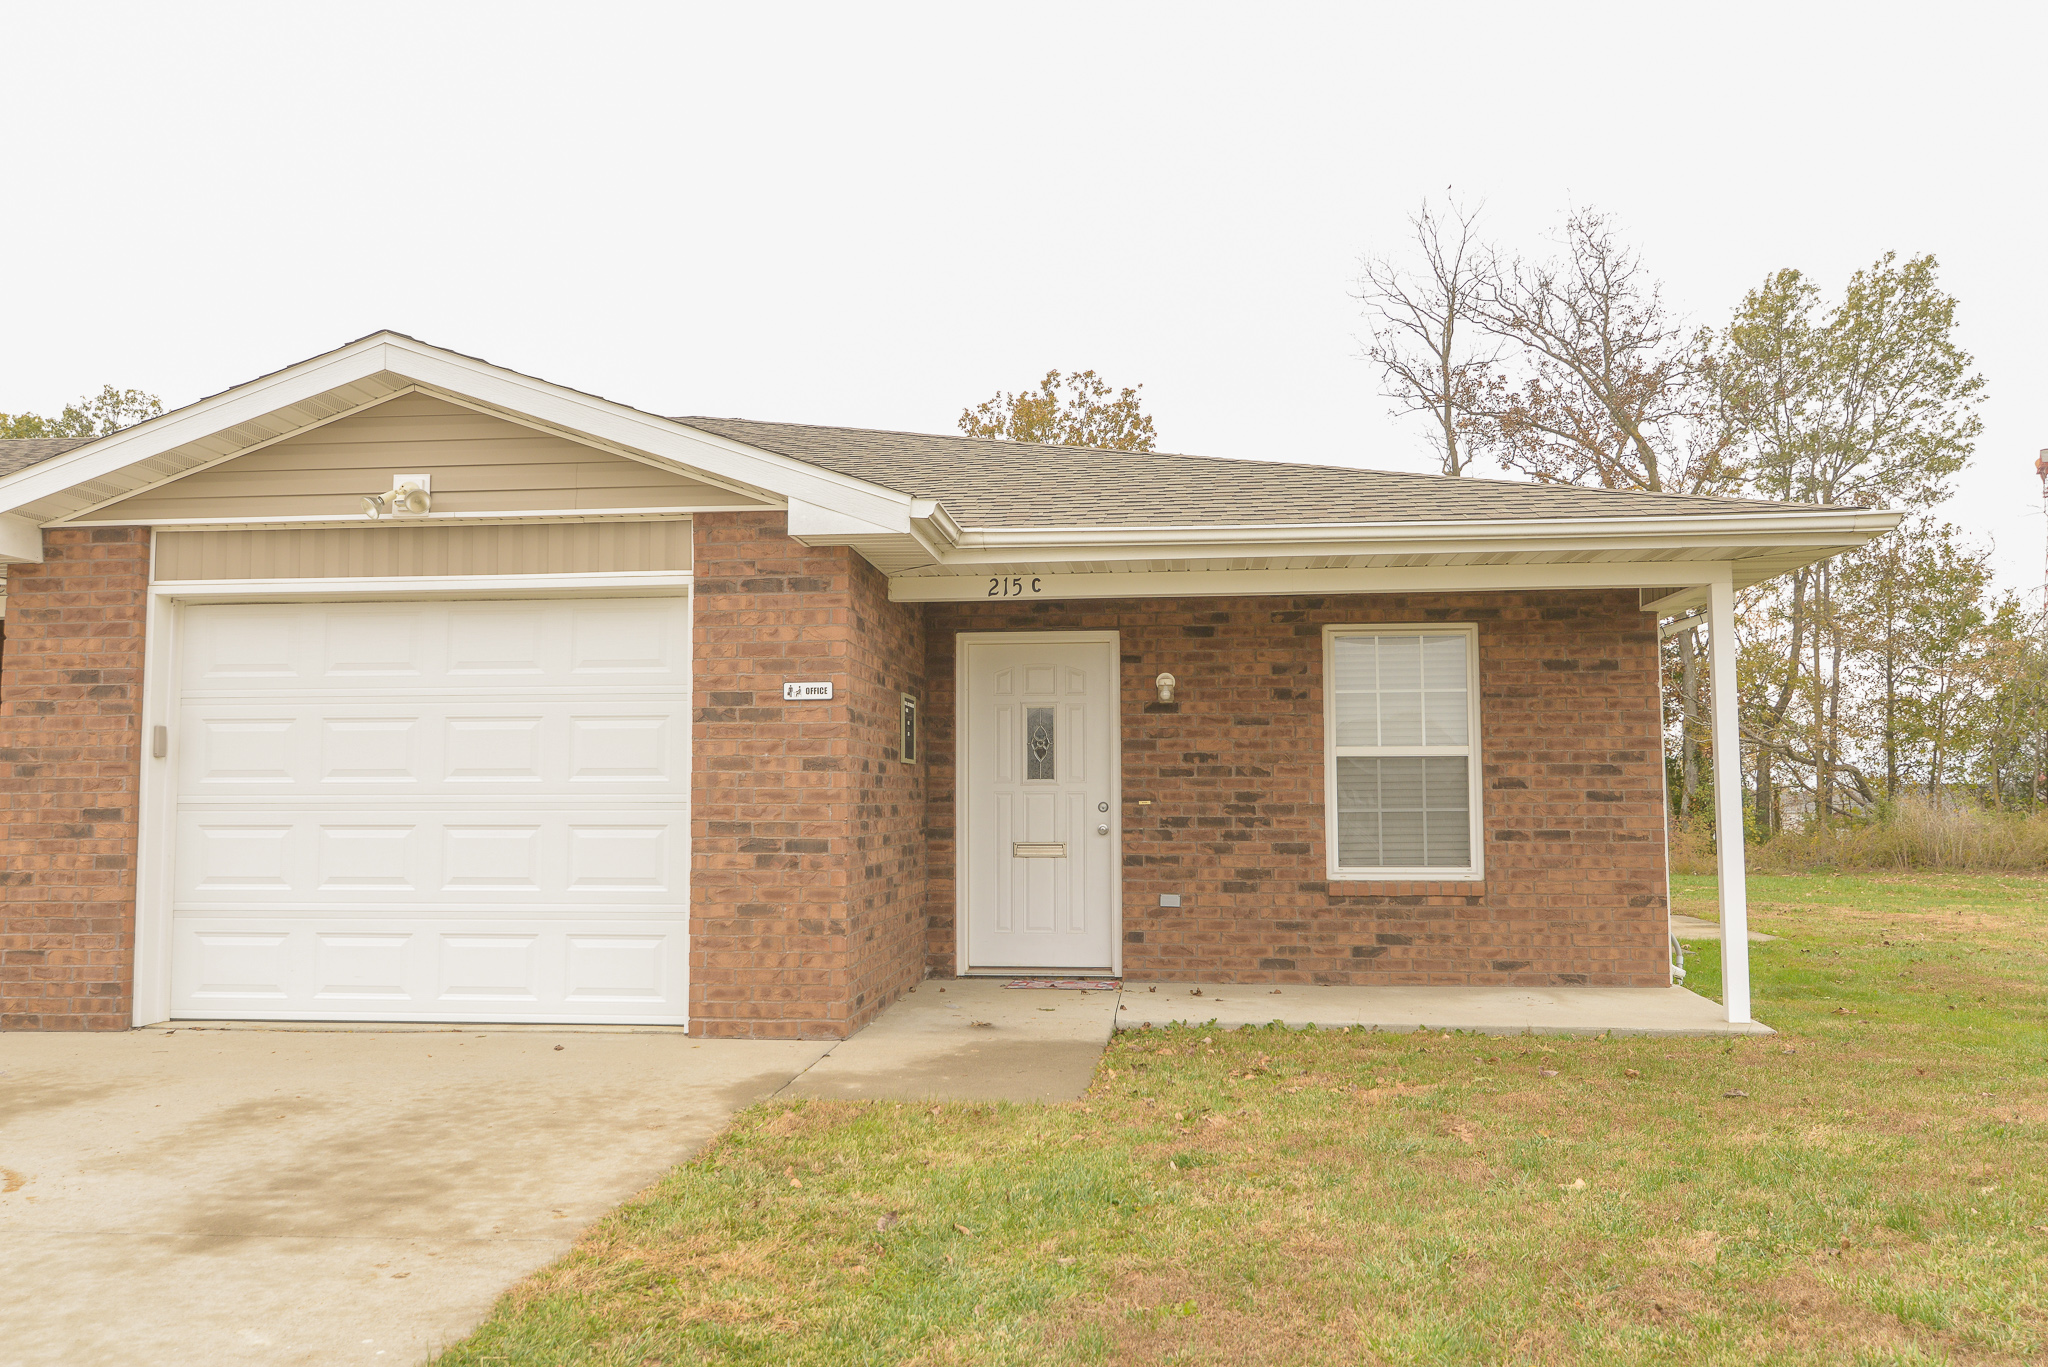 Home-For-Rent-Jefferson-City-Holts-Summit-Missouri-65109-Rentals-Property -Management-Capital-Investment-Realty (2)